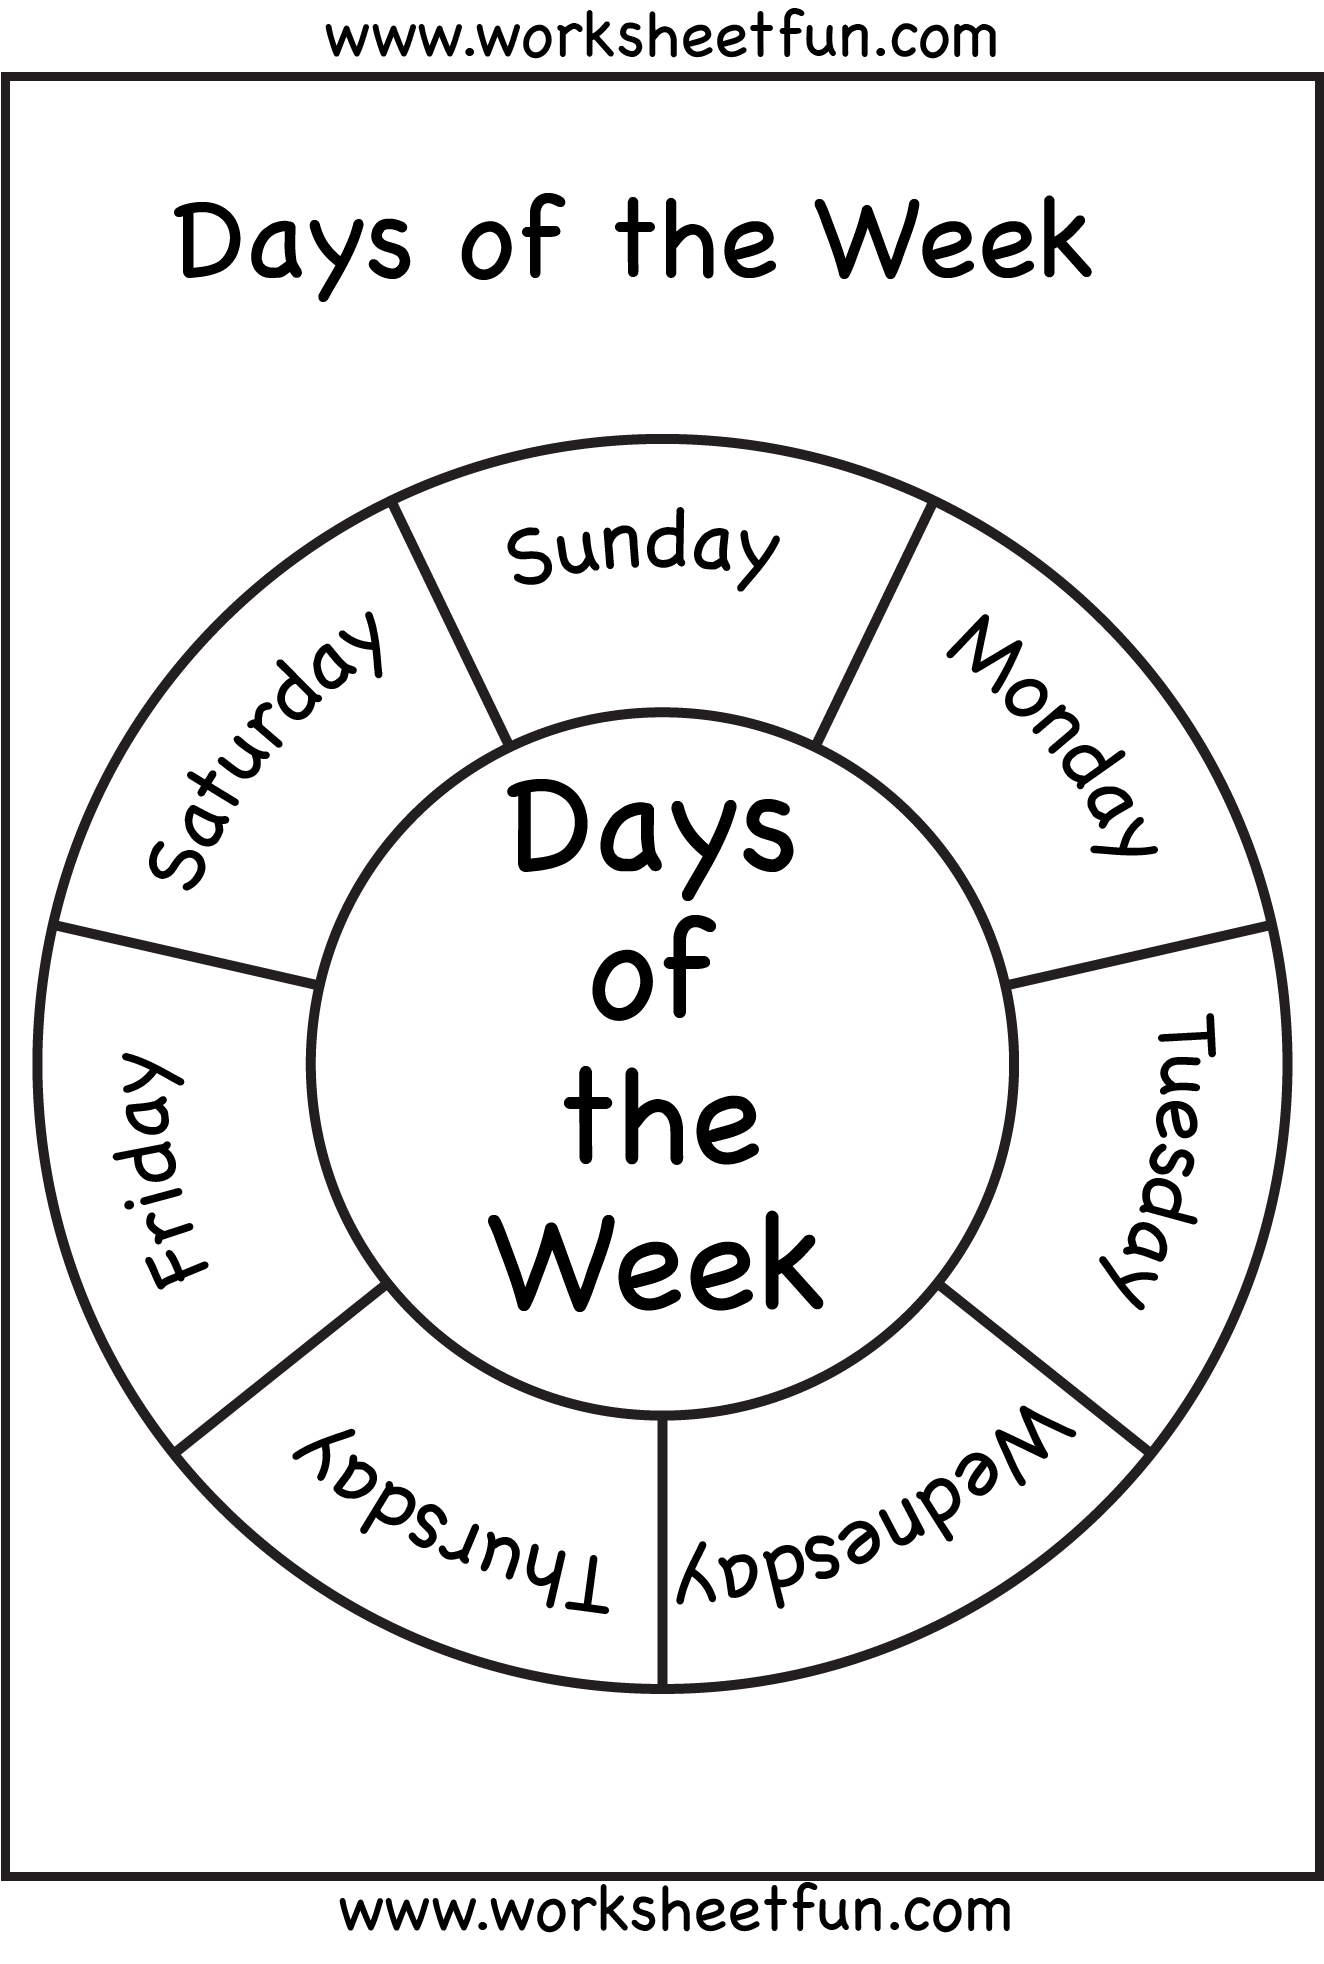 Days of the Week / FREE Printable Worksheets